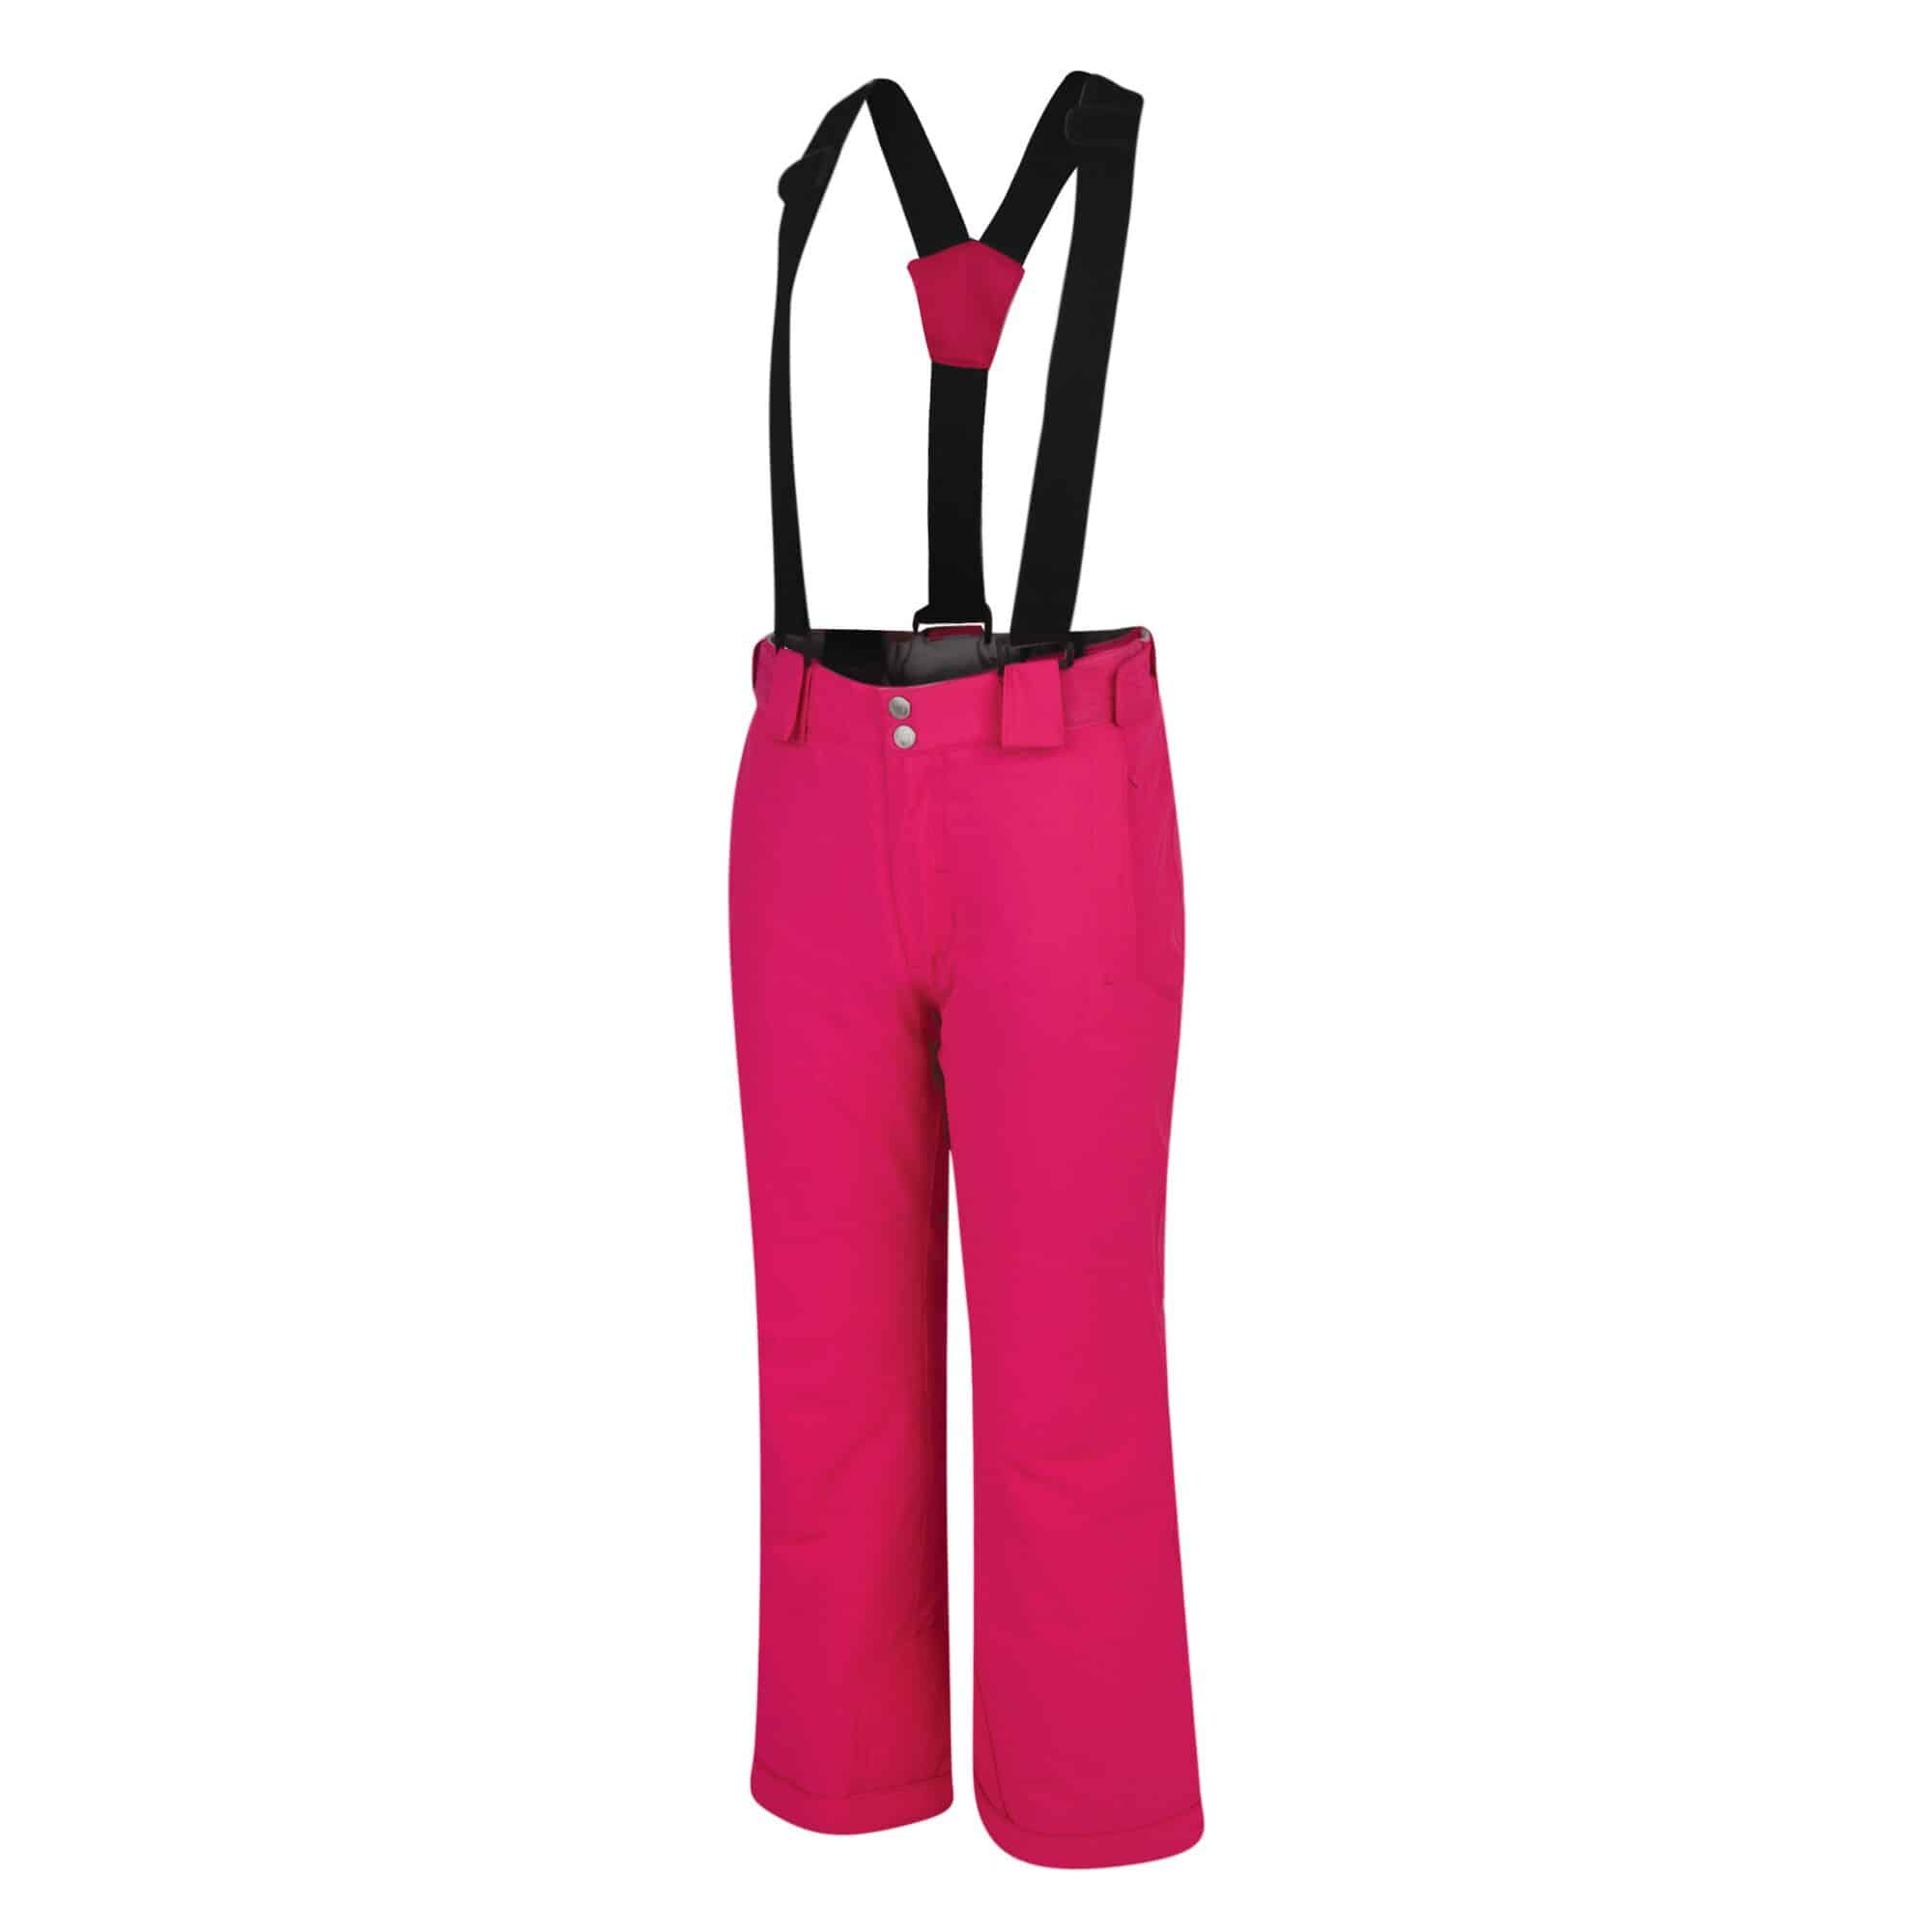 outmove cyber pink3